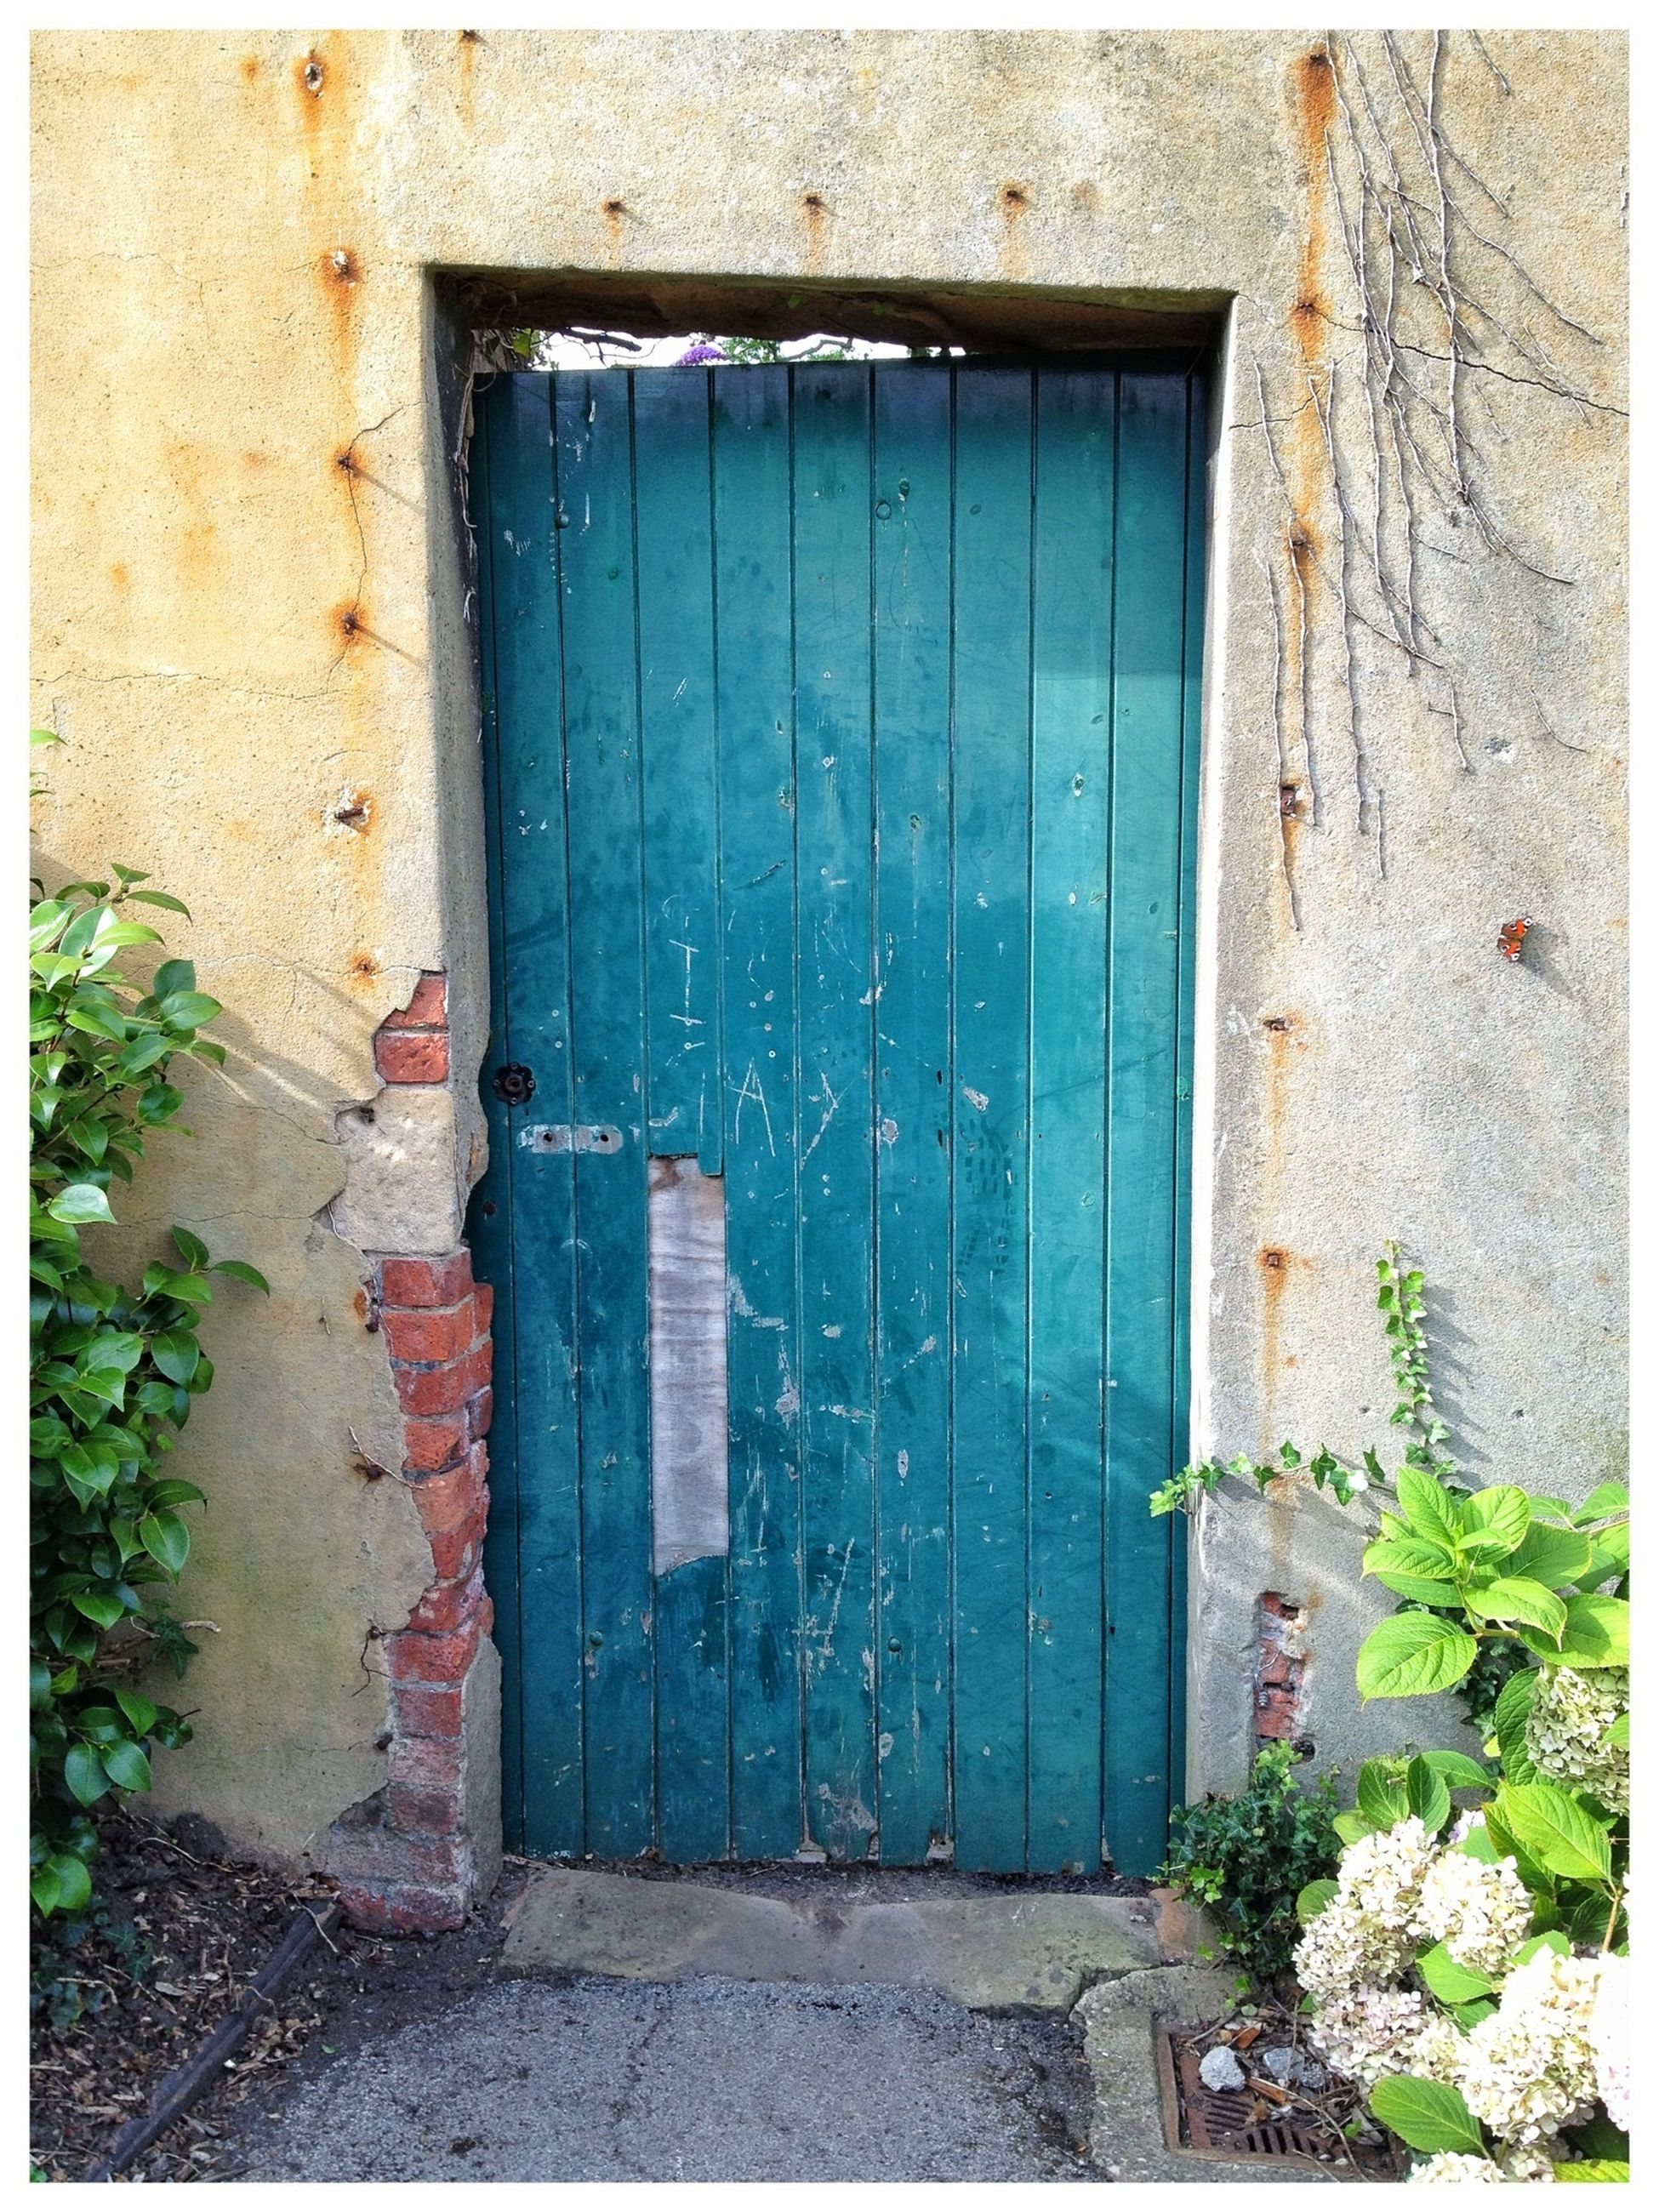 built structure, architecture, building exterior, door, closed, house, window, weathered, old, entrance, residential structure, safety, wall - building feature, wall, abandoned, protection, plant, damaged, day, wood - material